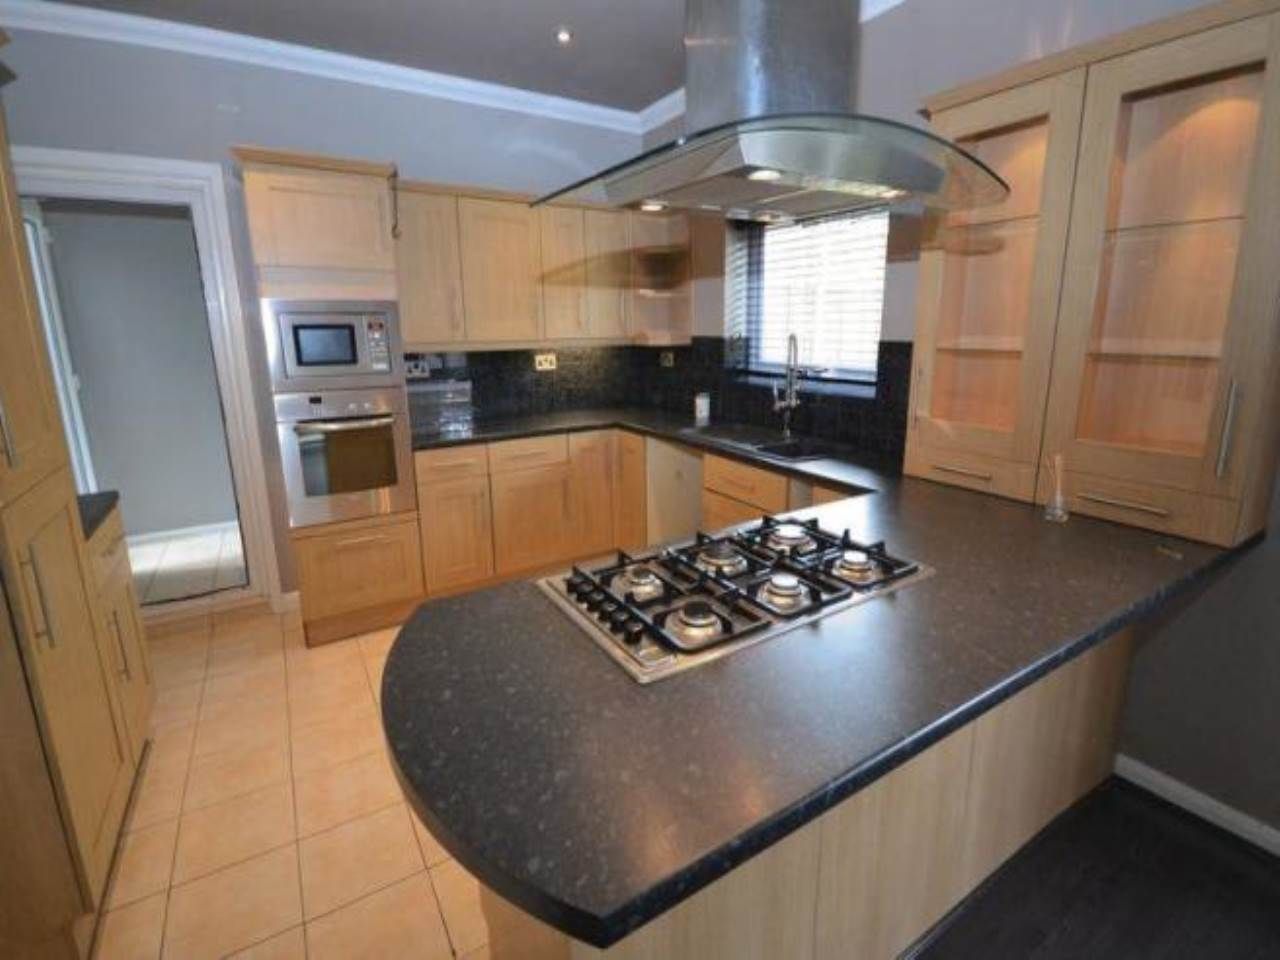 4 bed house for sale in Cowper Road, Moordown  - Property Image 4